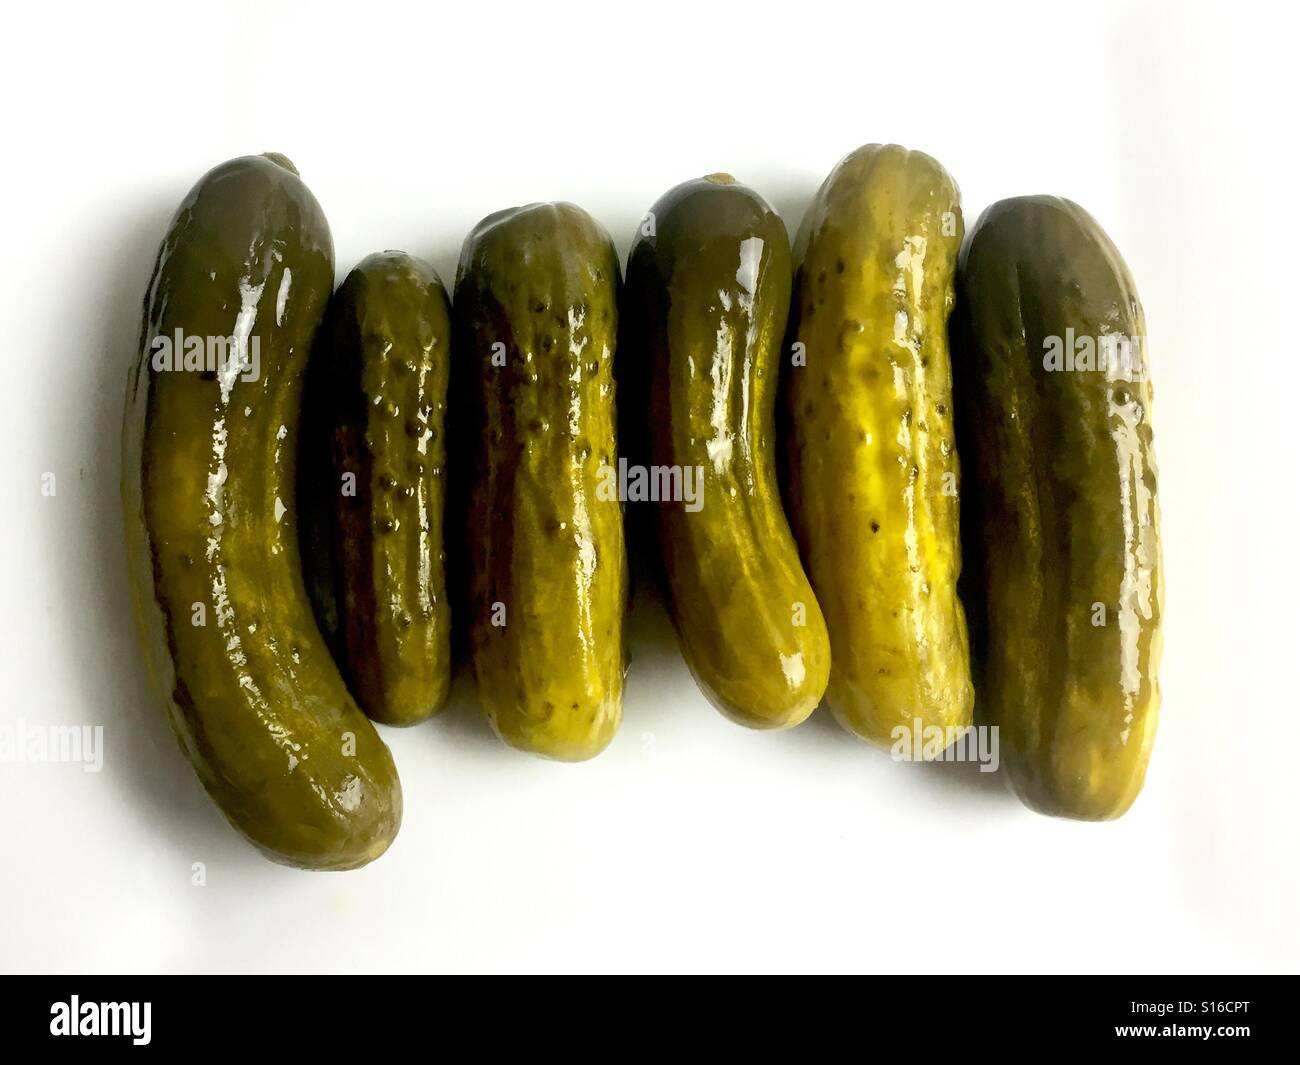 Dill pickles on a white plate - Stock Image